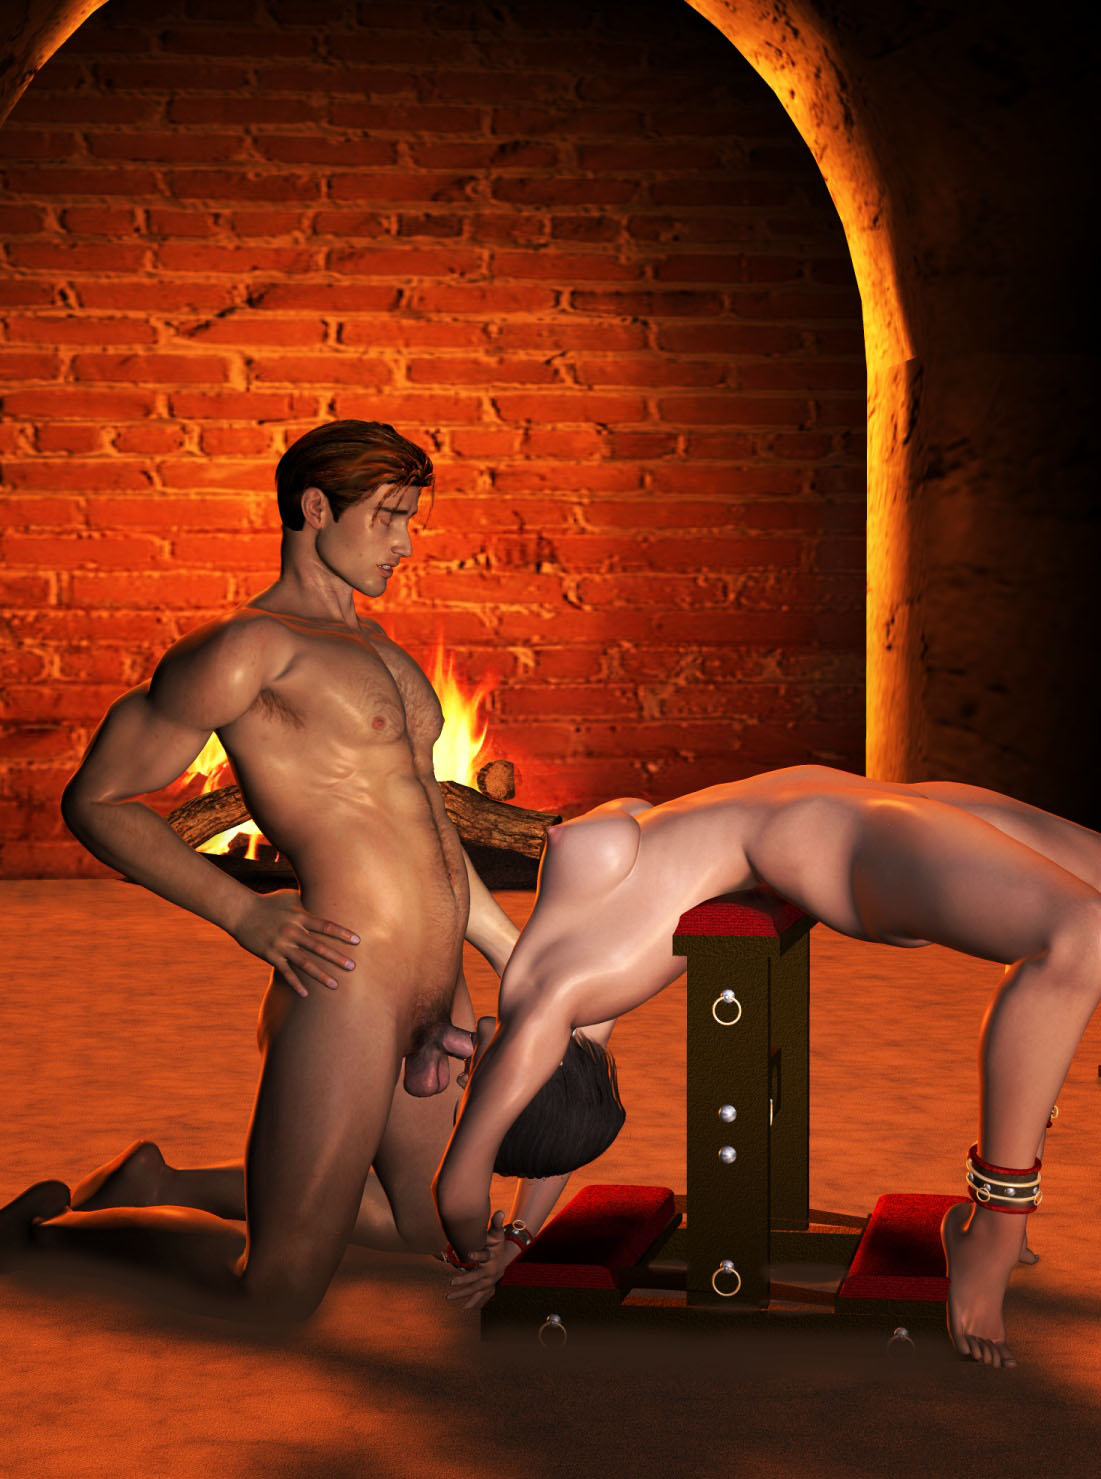 Porno online henti slave hentay images